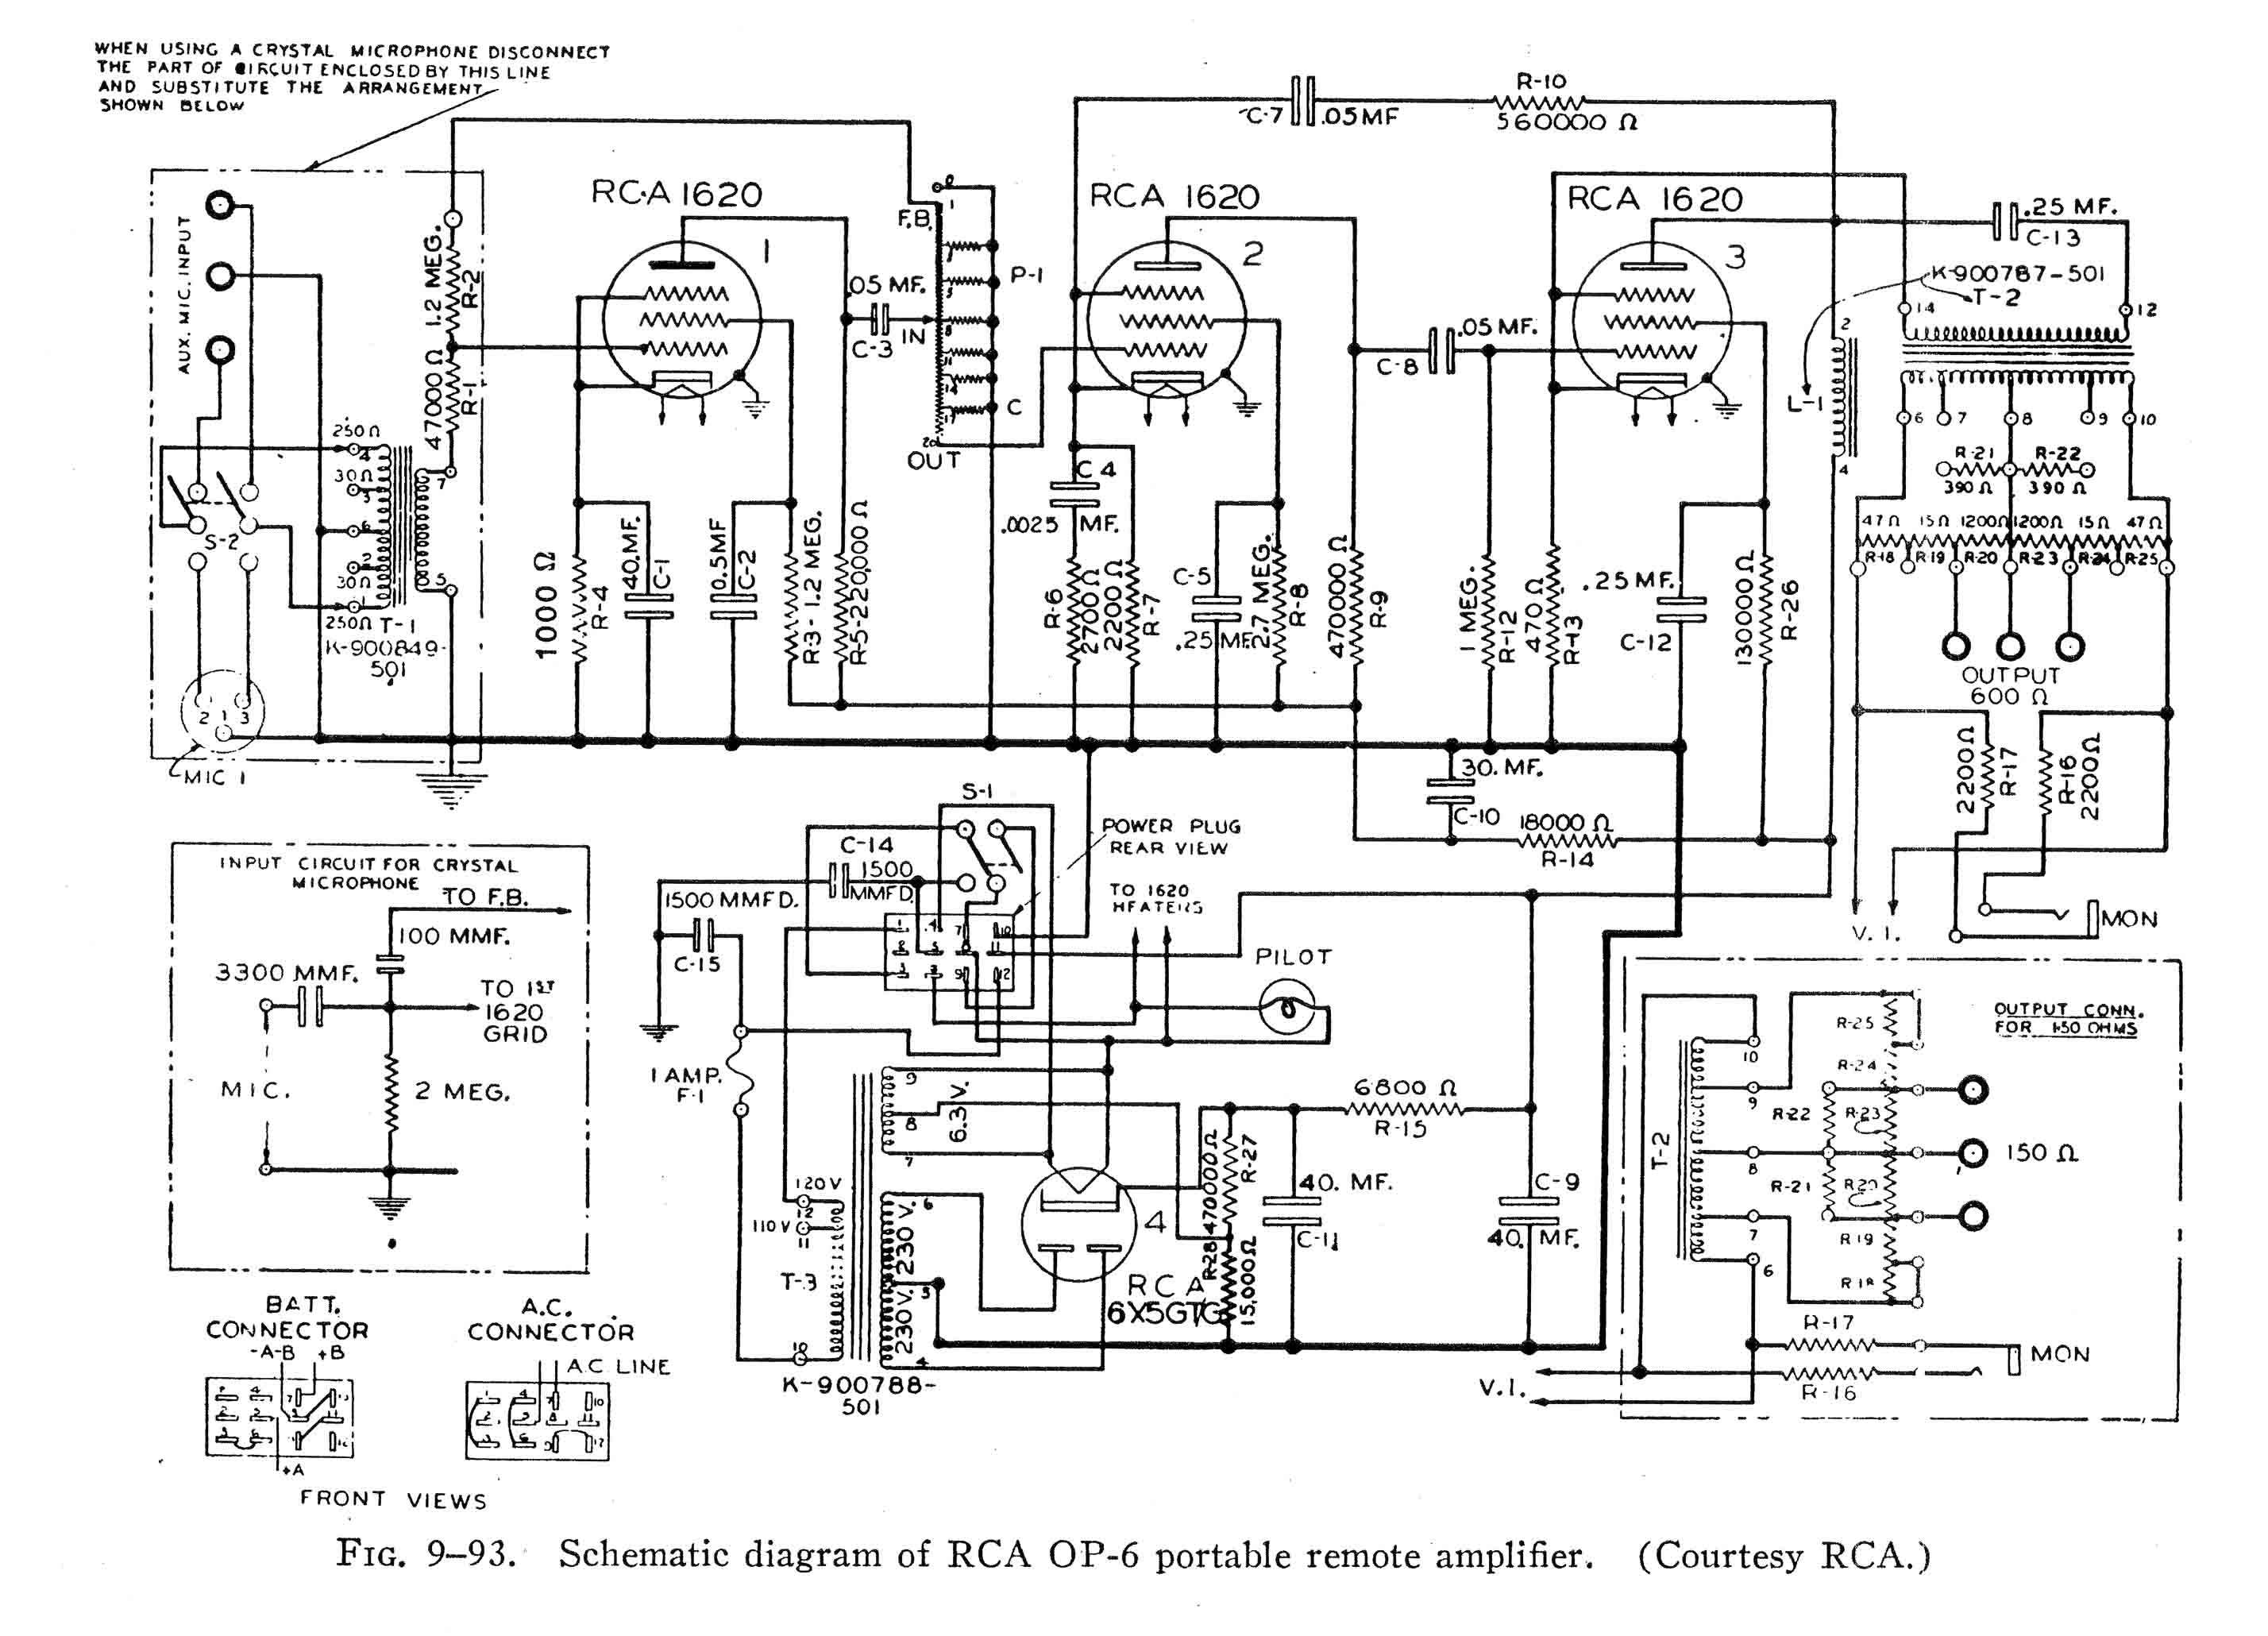 May 2011 Preservation Sound Pro Team Vacuum Wiring Diagram The Op 6 Schematic